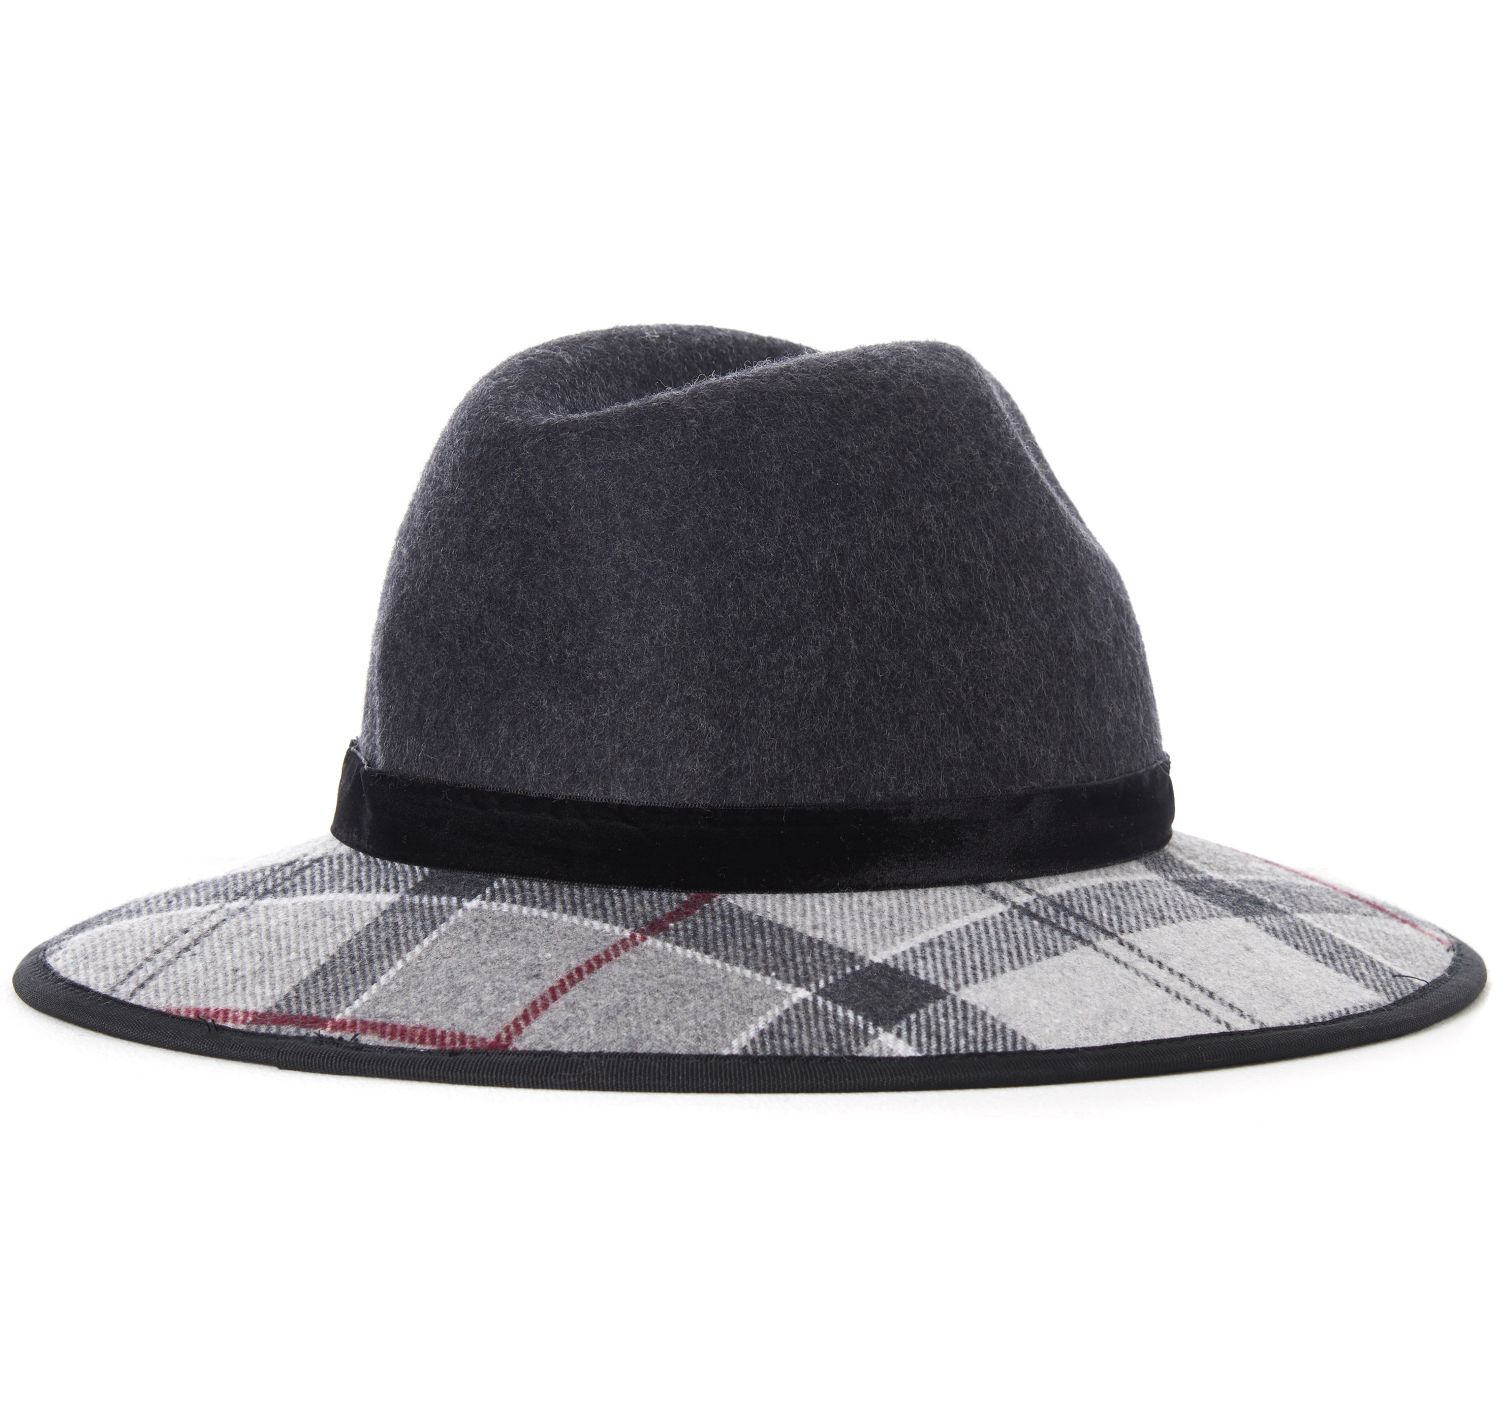 Barbour Barbour Thornhill Fedora Charcoal Gorro muy femenino con ala!